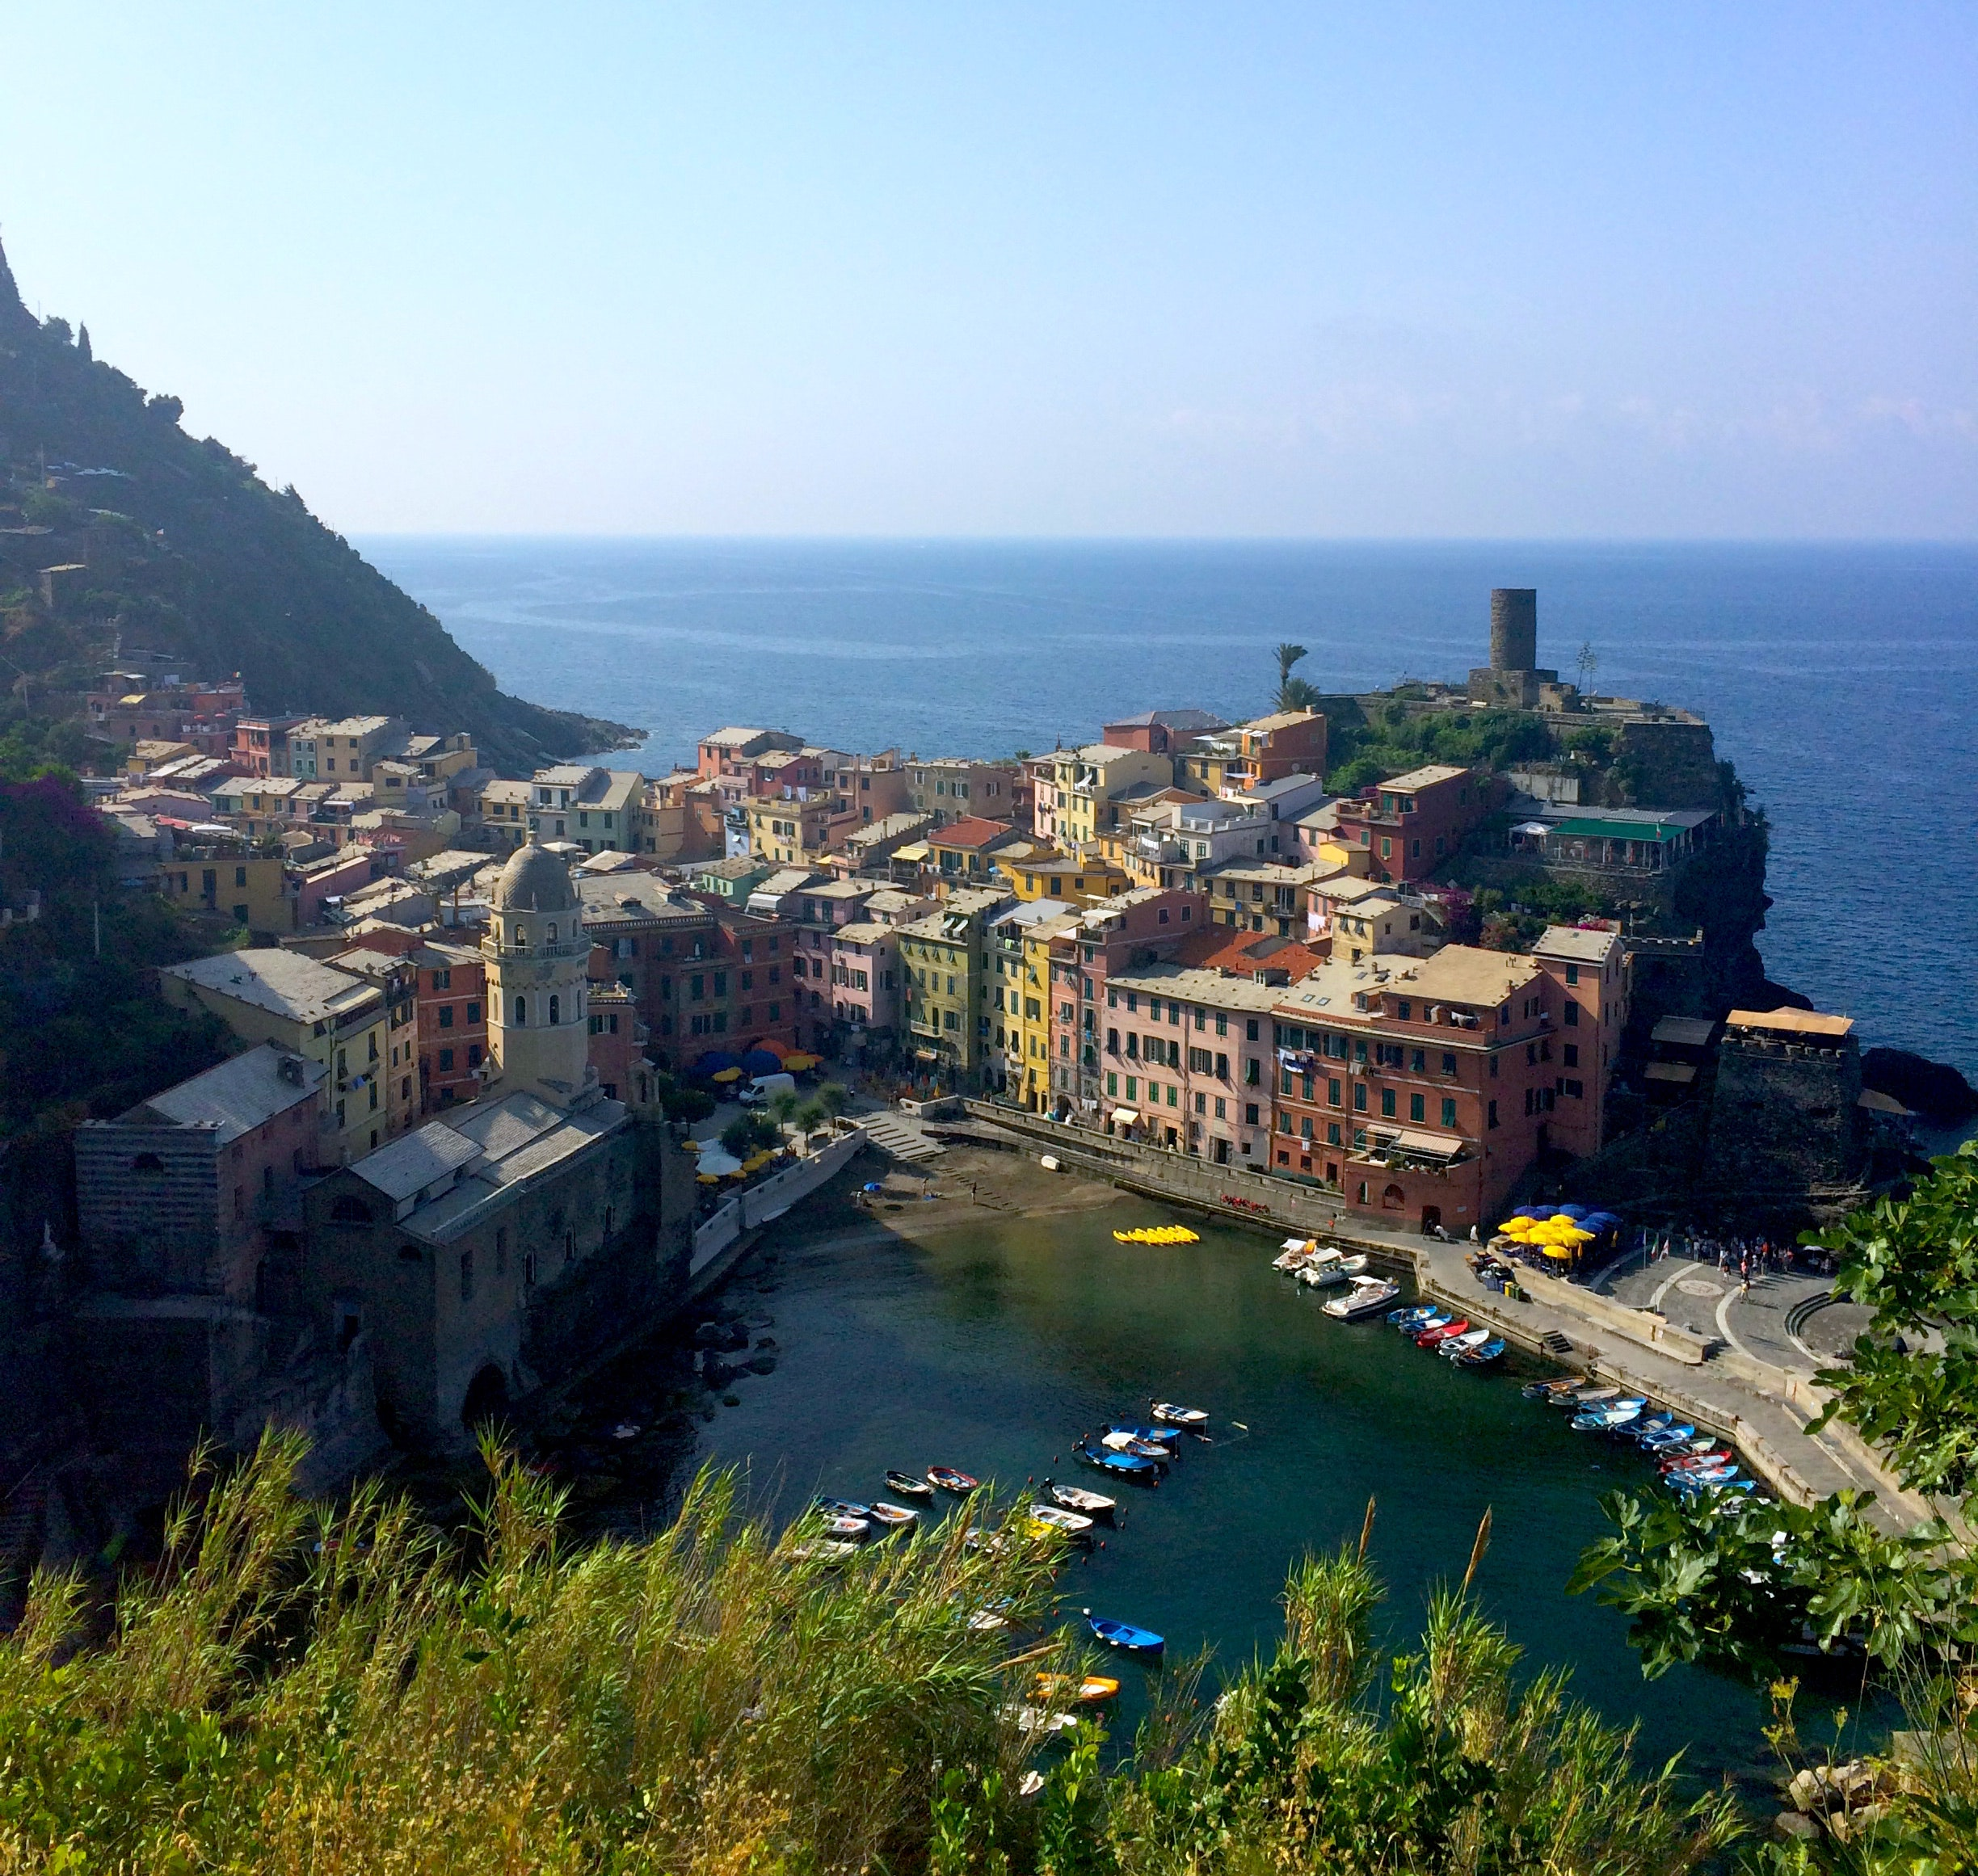 9 Thoughts You Have While Hiking Cinque Terre Alone